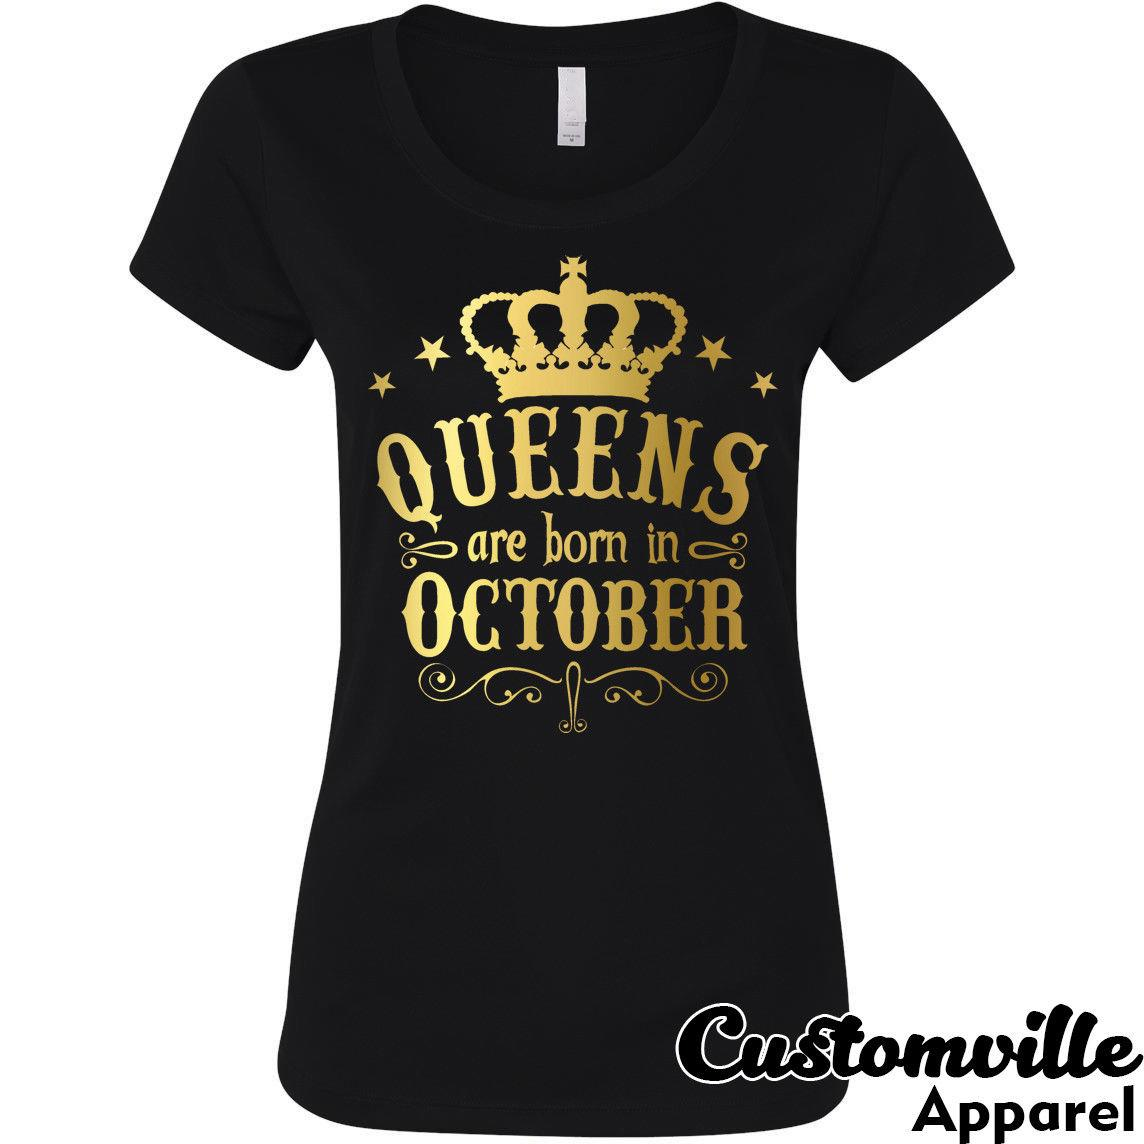 5ec6d139b Queens are born in October Women's T-shirt. Birthday Girl gift shirt Gold  logo Funny free shipping Unisex Casual tshirt gift